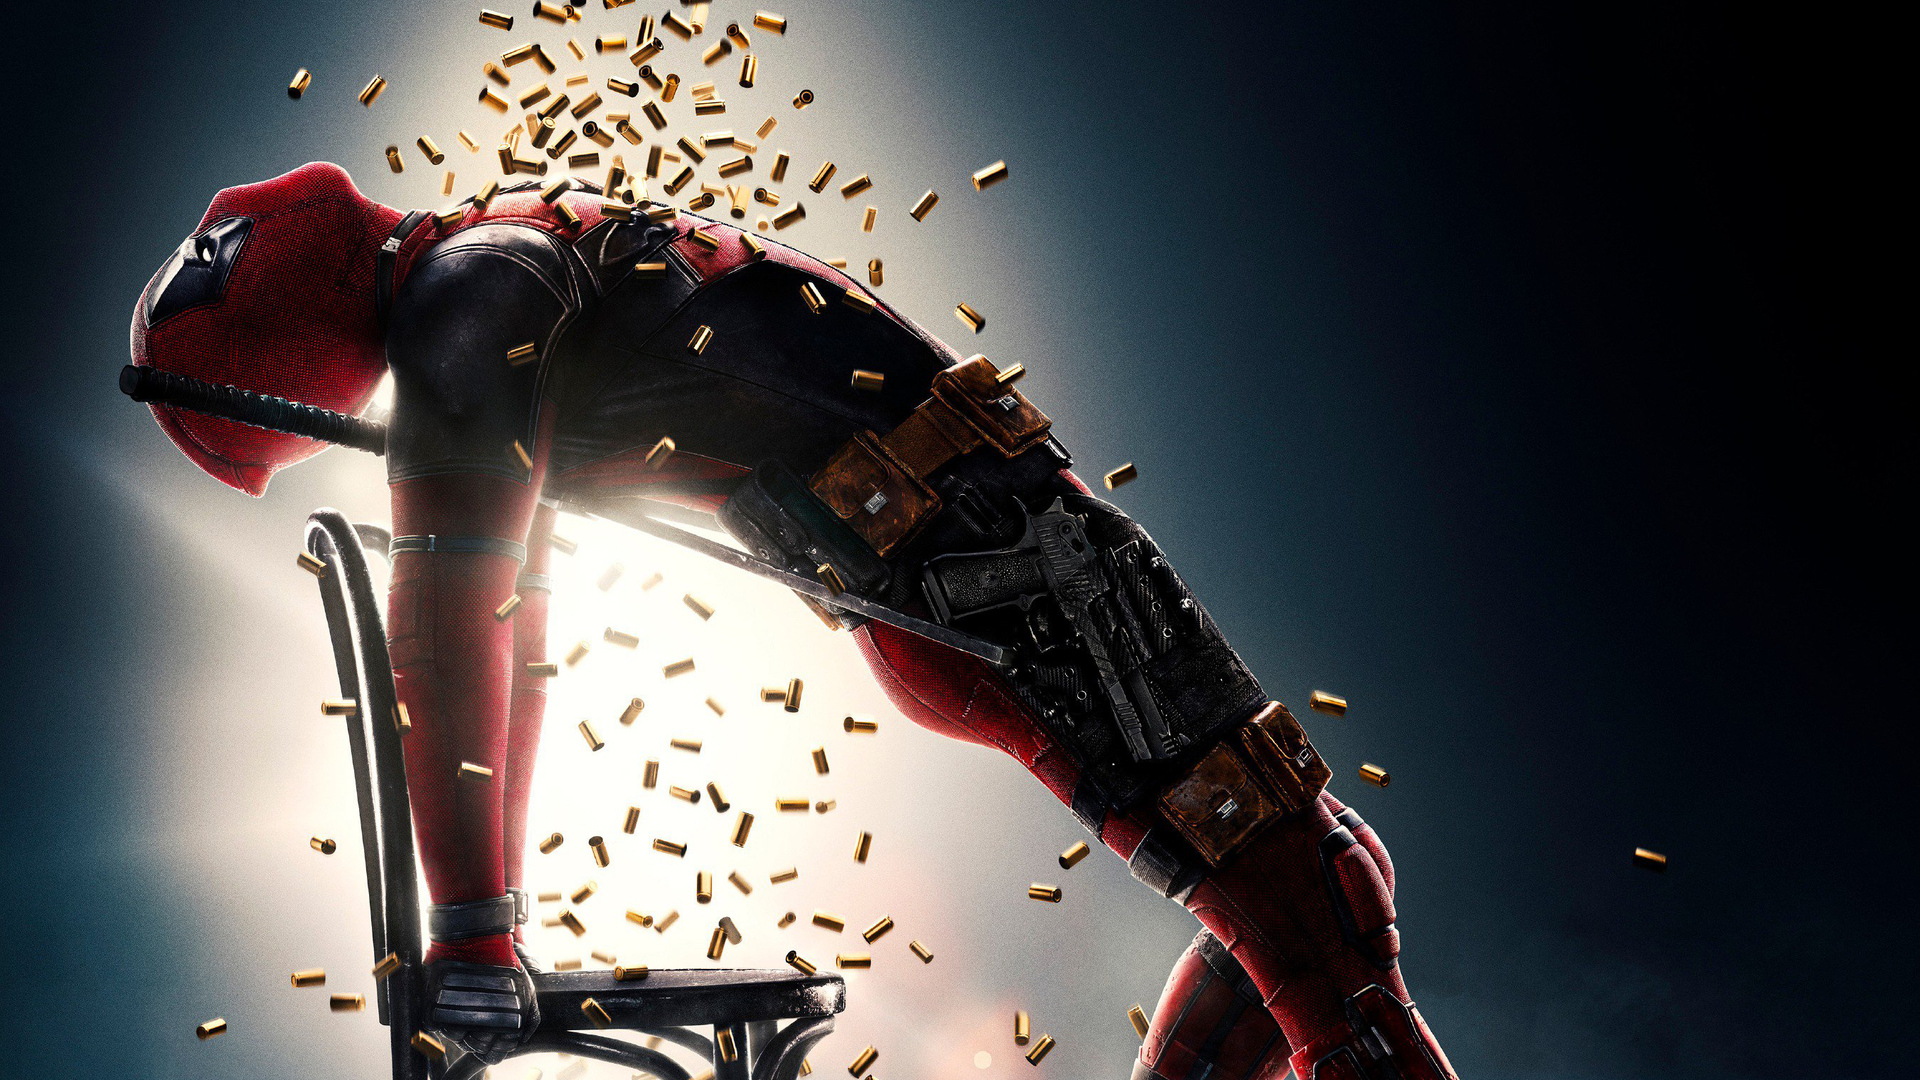 Amazing Wallpaper Movie Laptop - deadpool-2-poster-2018-movie-xt-1920x1080  Best Photo Reference_591329.jpg